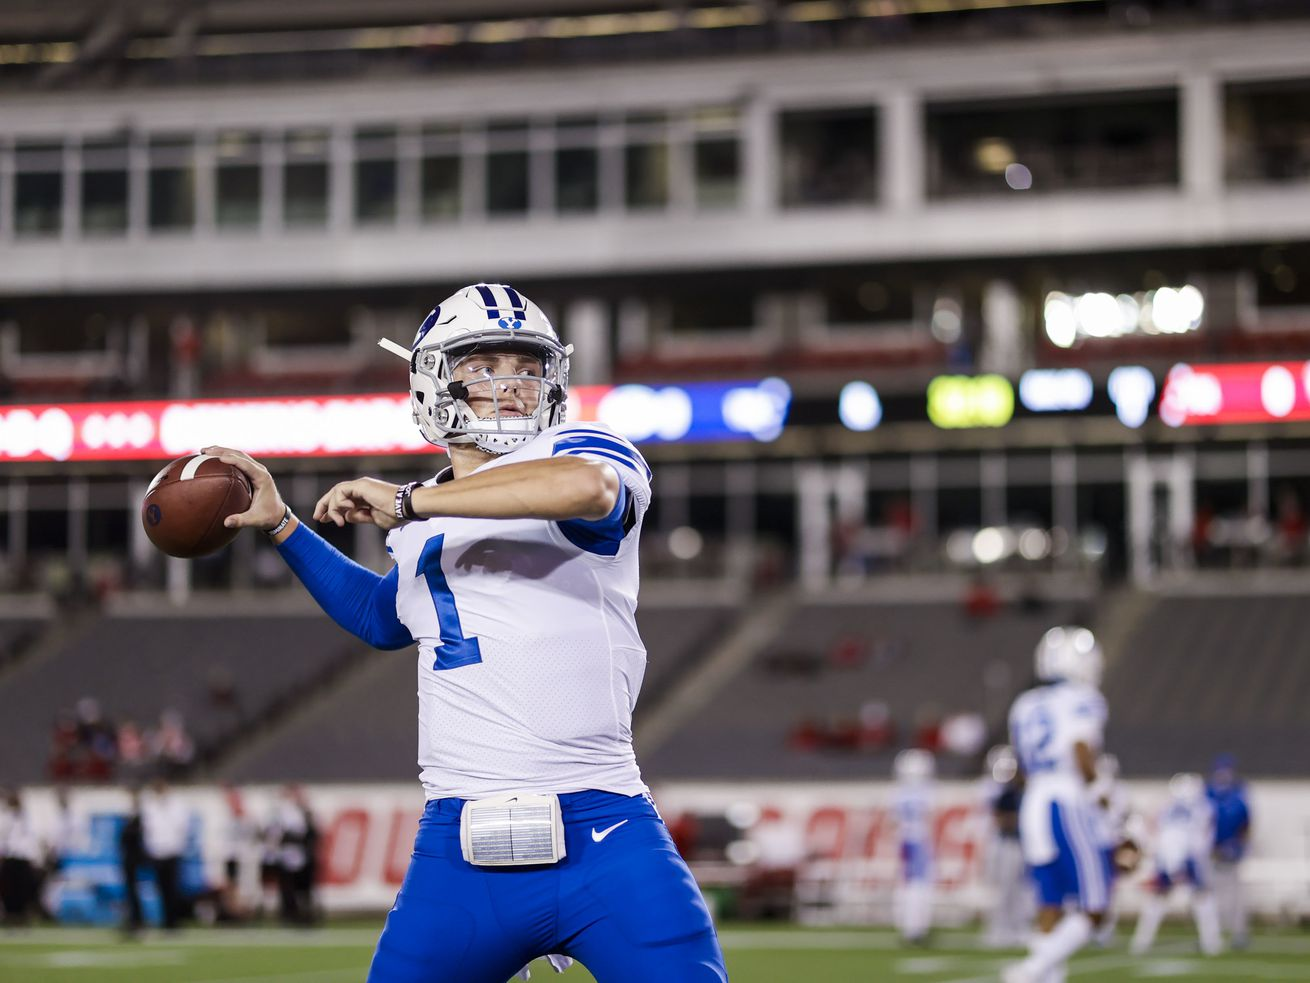 BYU players relish first opportunity to play in front of spectators this season at Houston